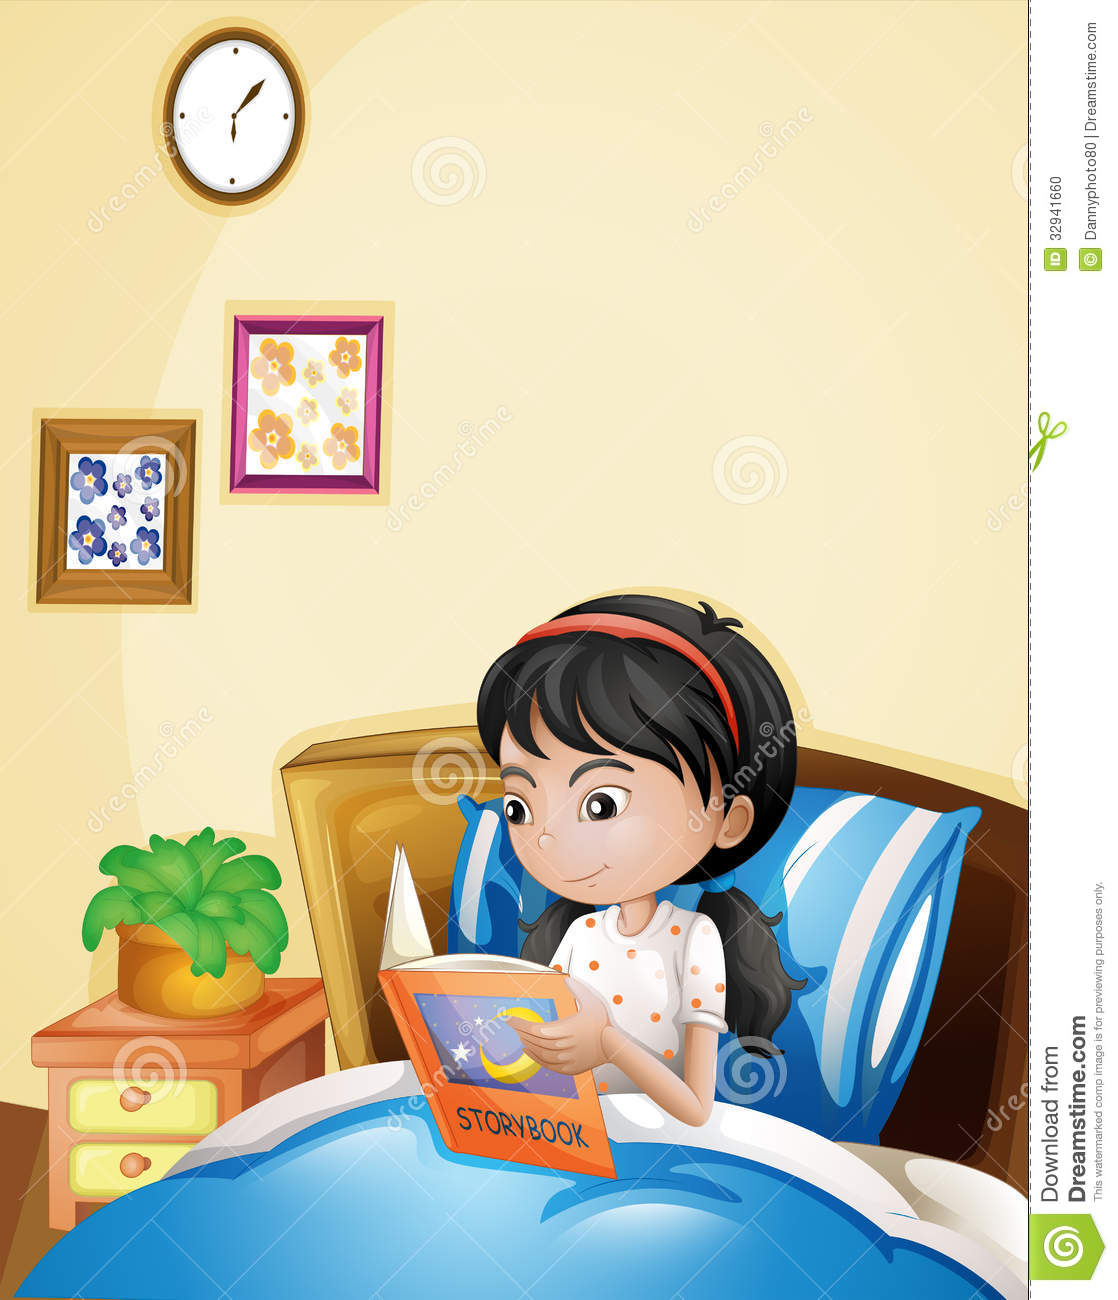 une jeune dame lisant livre de contes dans son lit illustration stock image 32941660. Black Bedroom Furniture Sets. Home Design Ideas